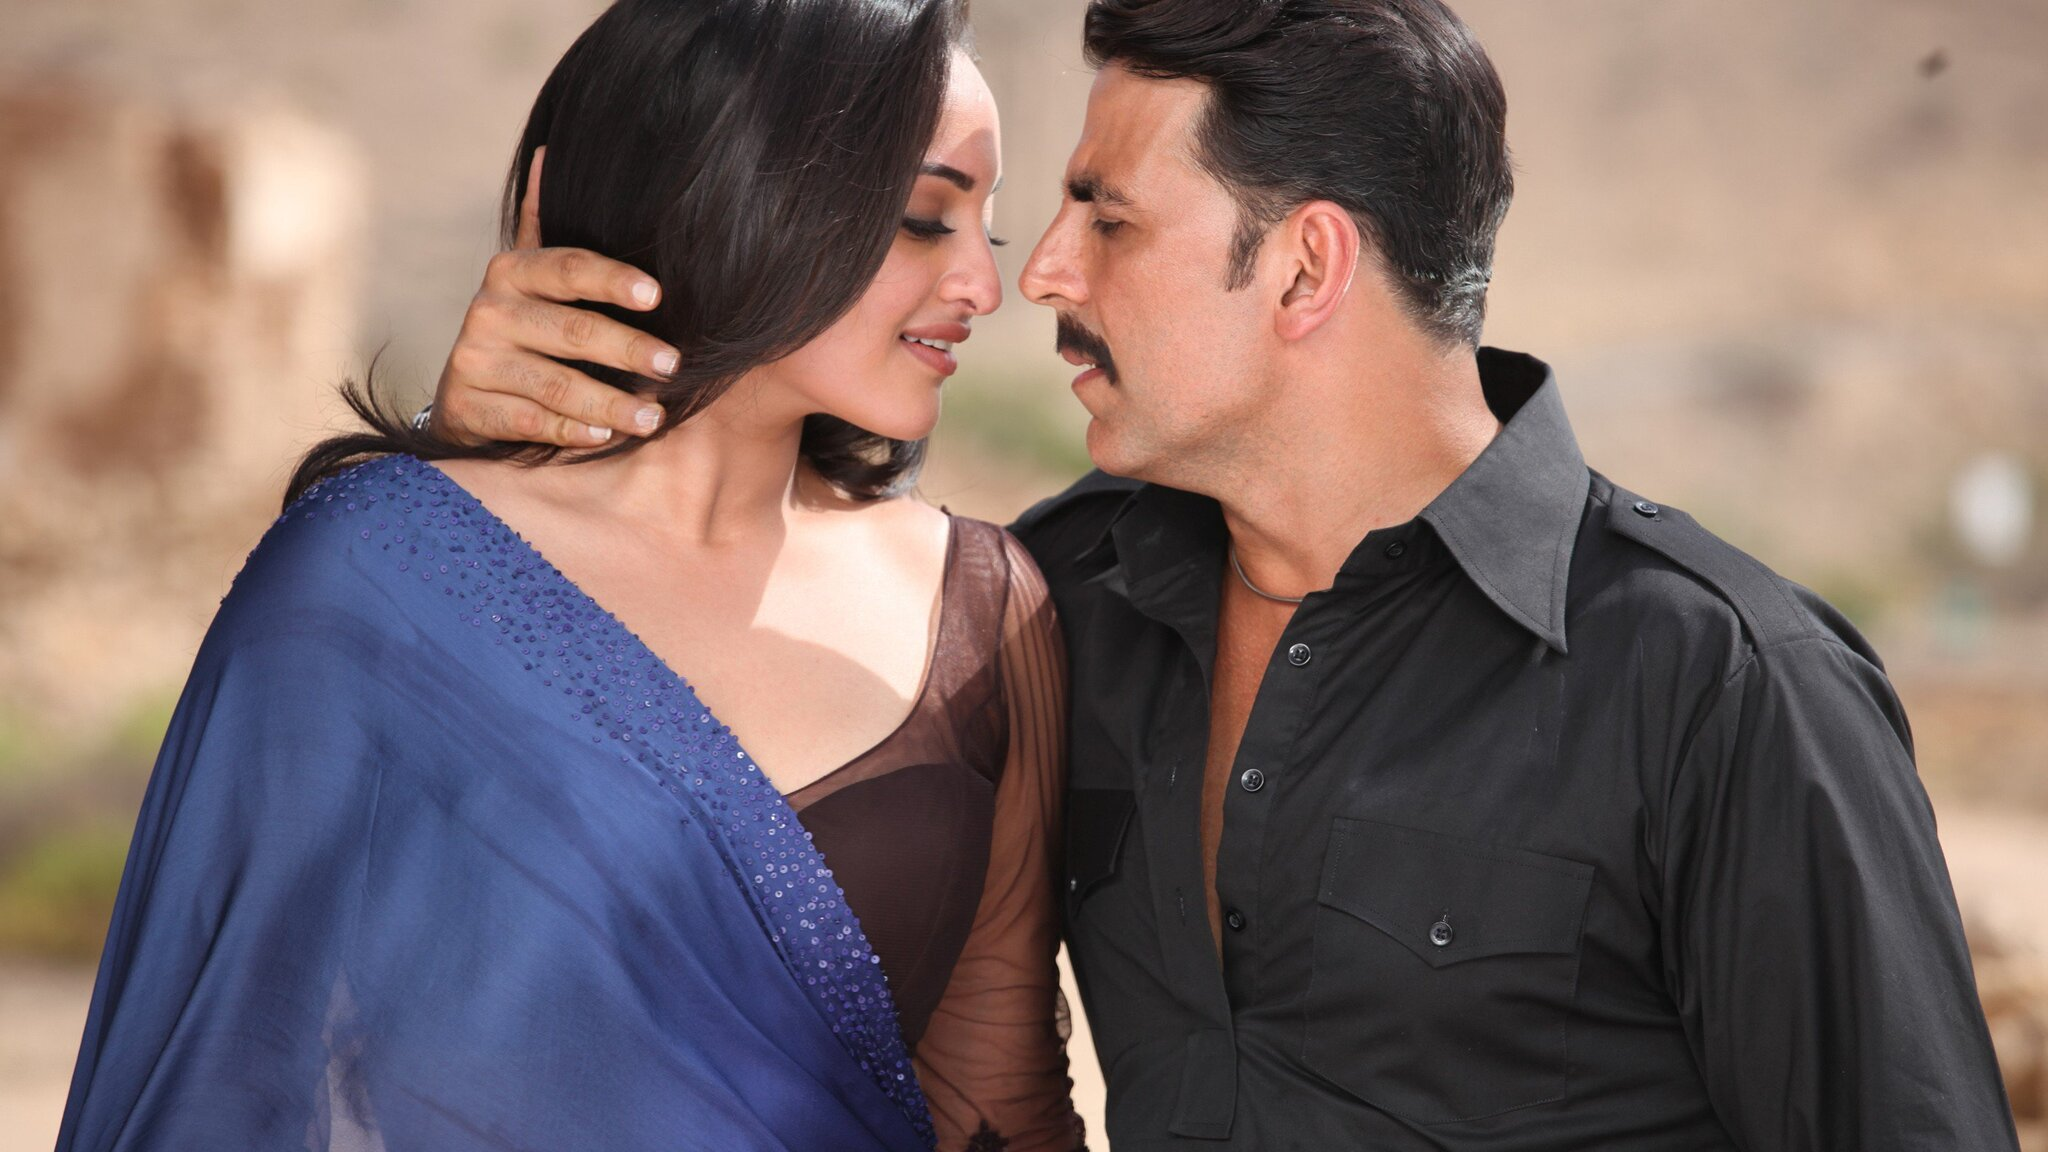 2048x1152 sonakshi sinha with akshay kumar 2048x1152 resolution hd